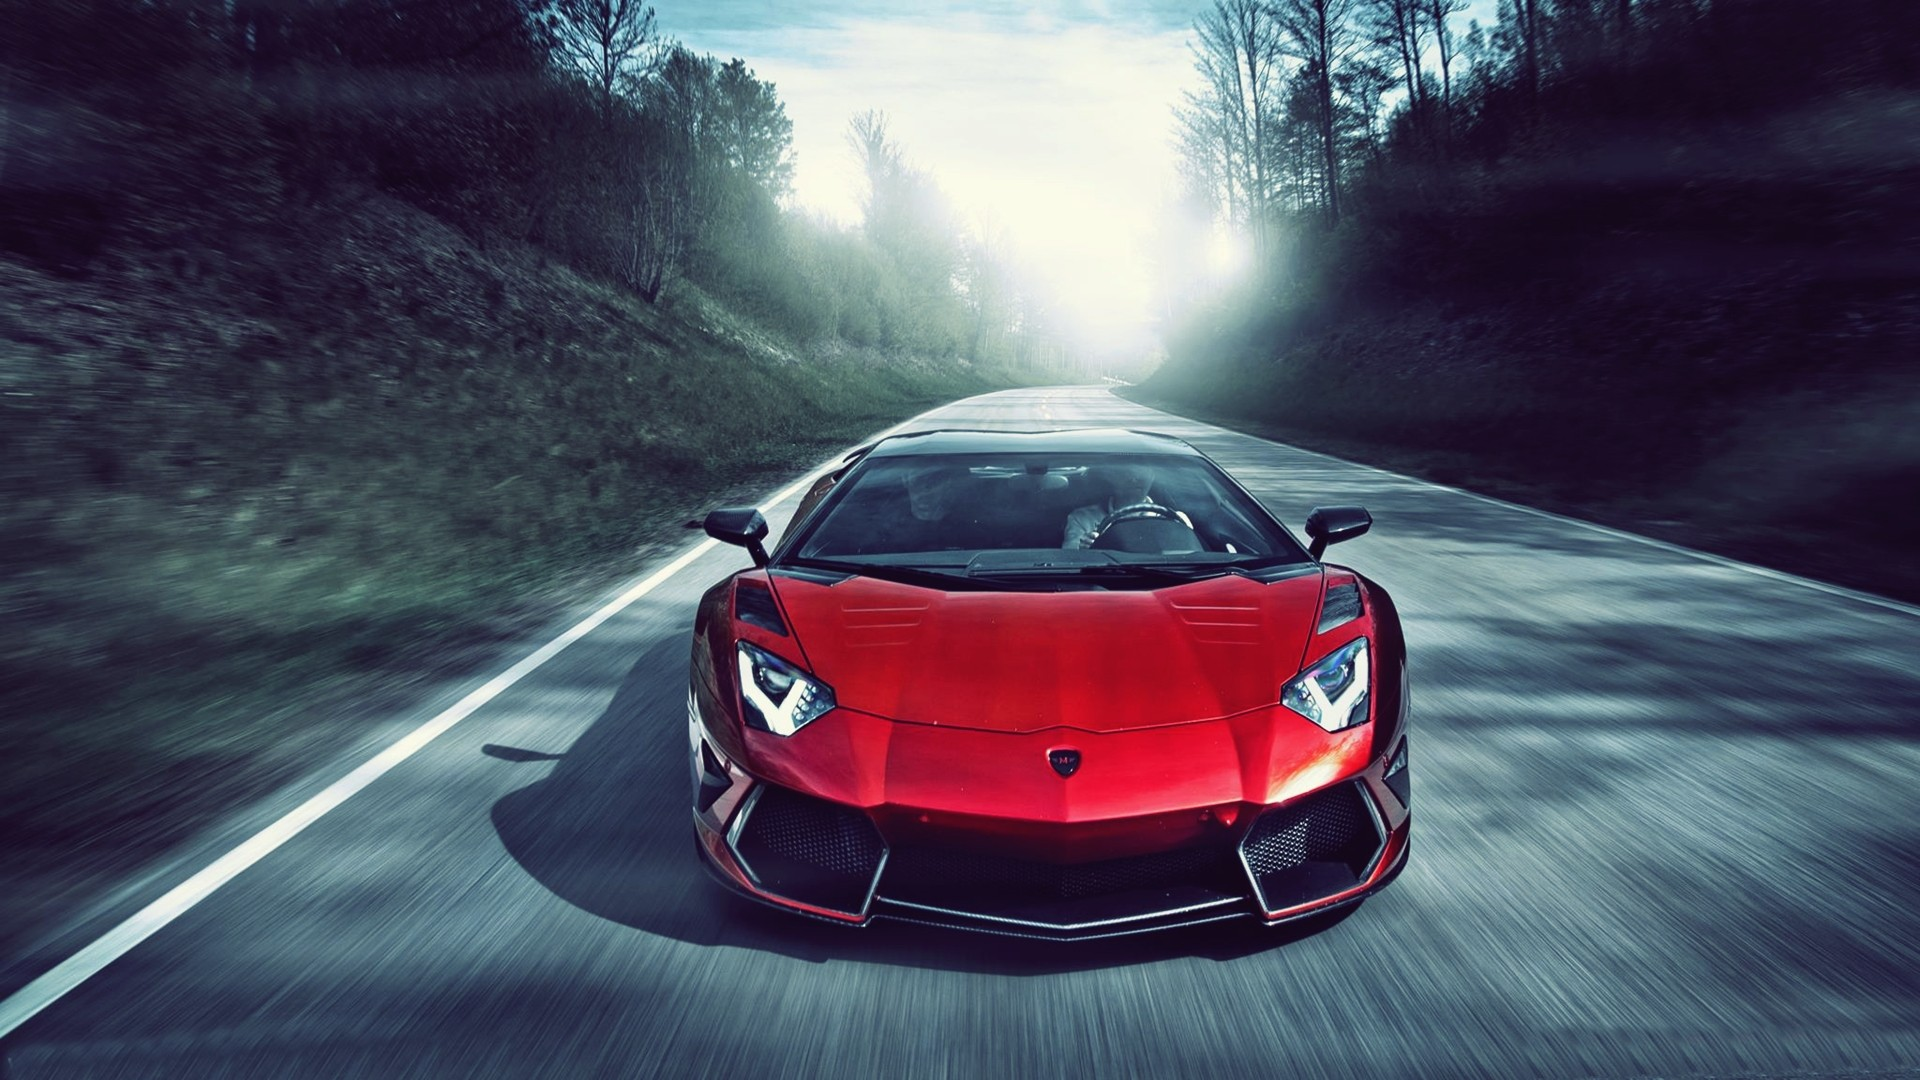 Lamborghini Aventador Full HD Wallpaper and Background ...